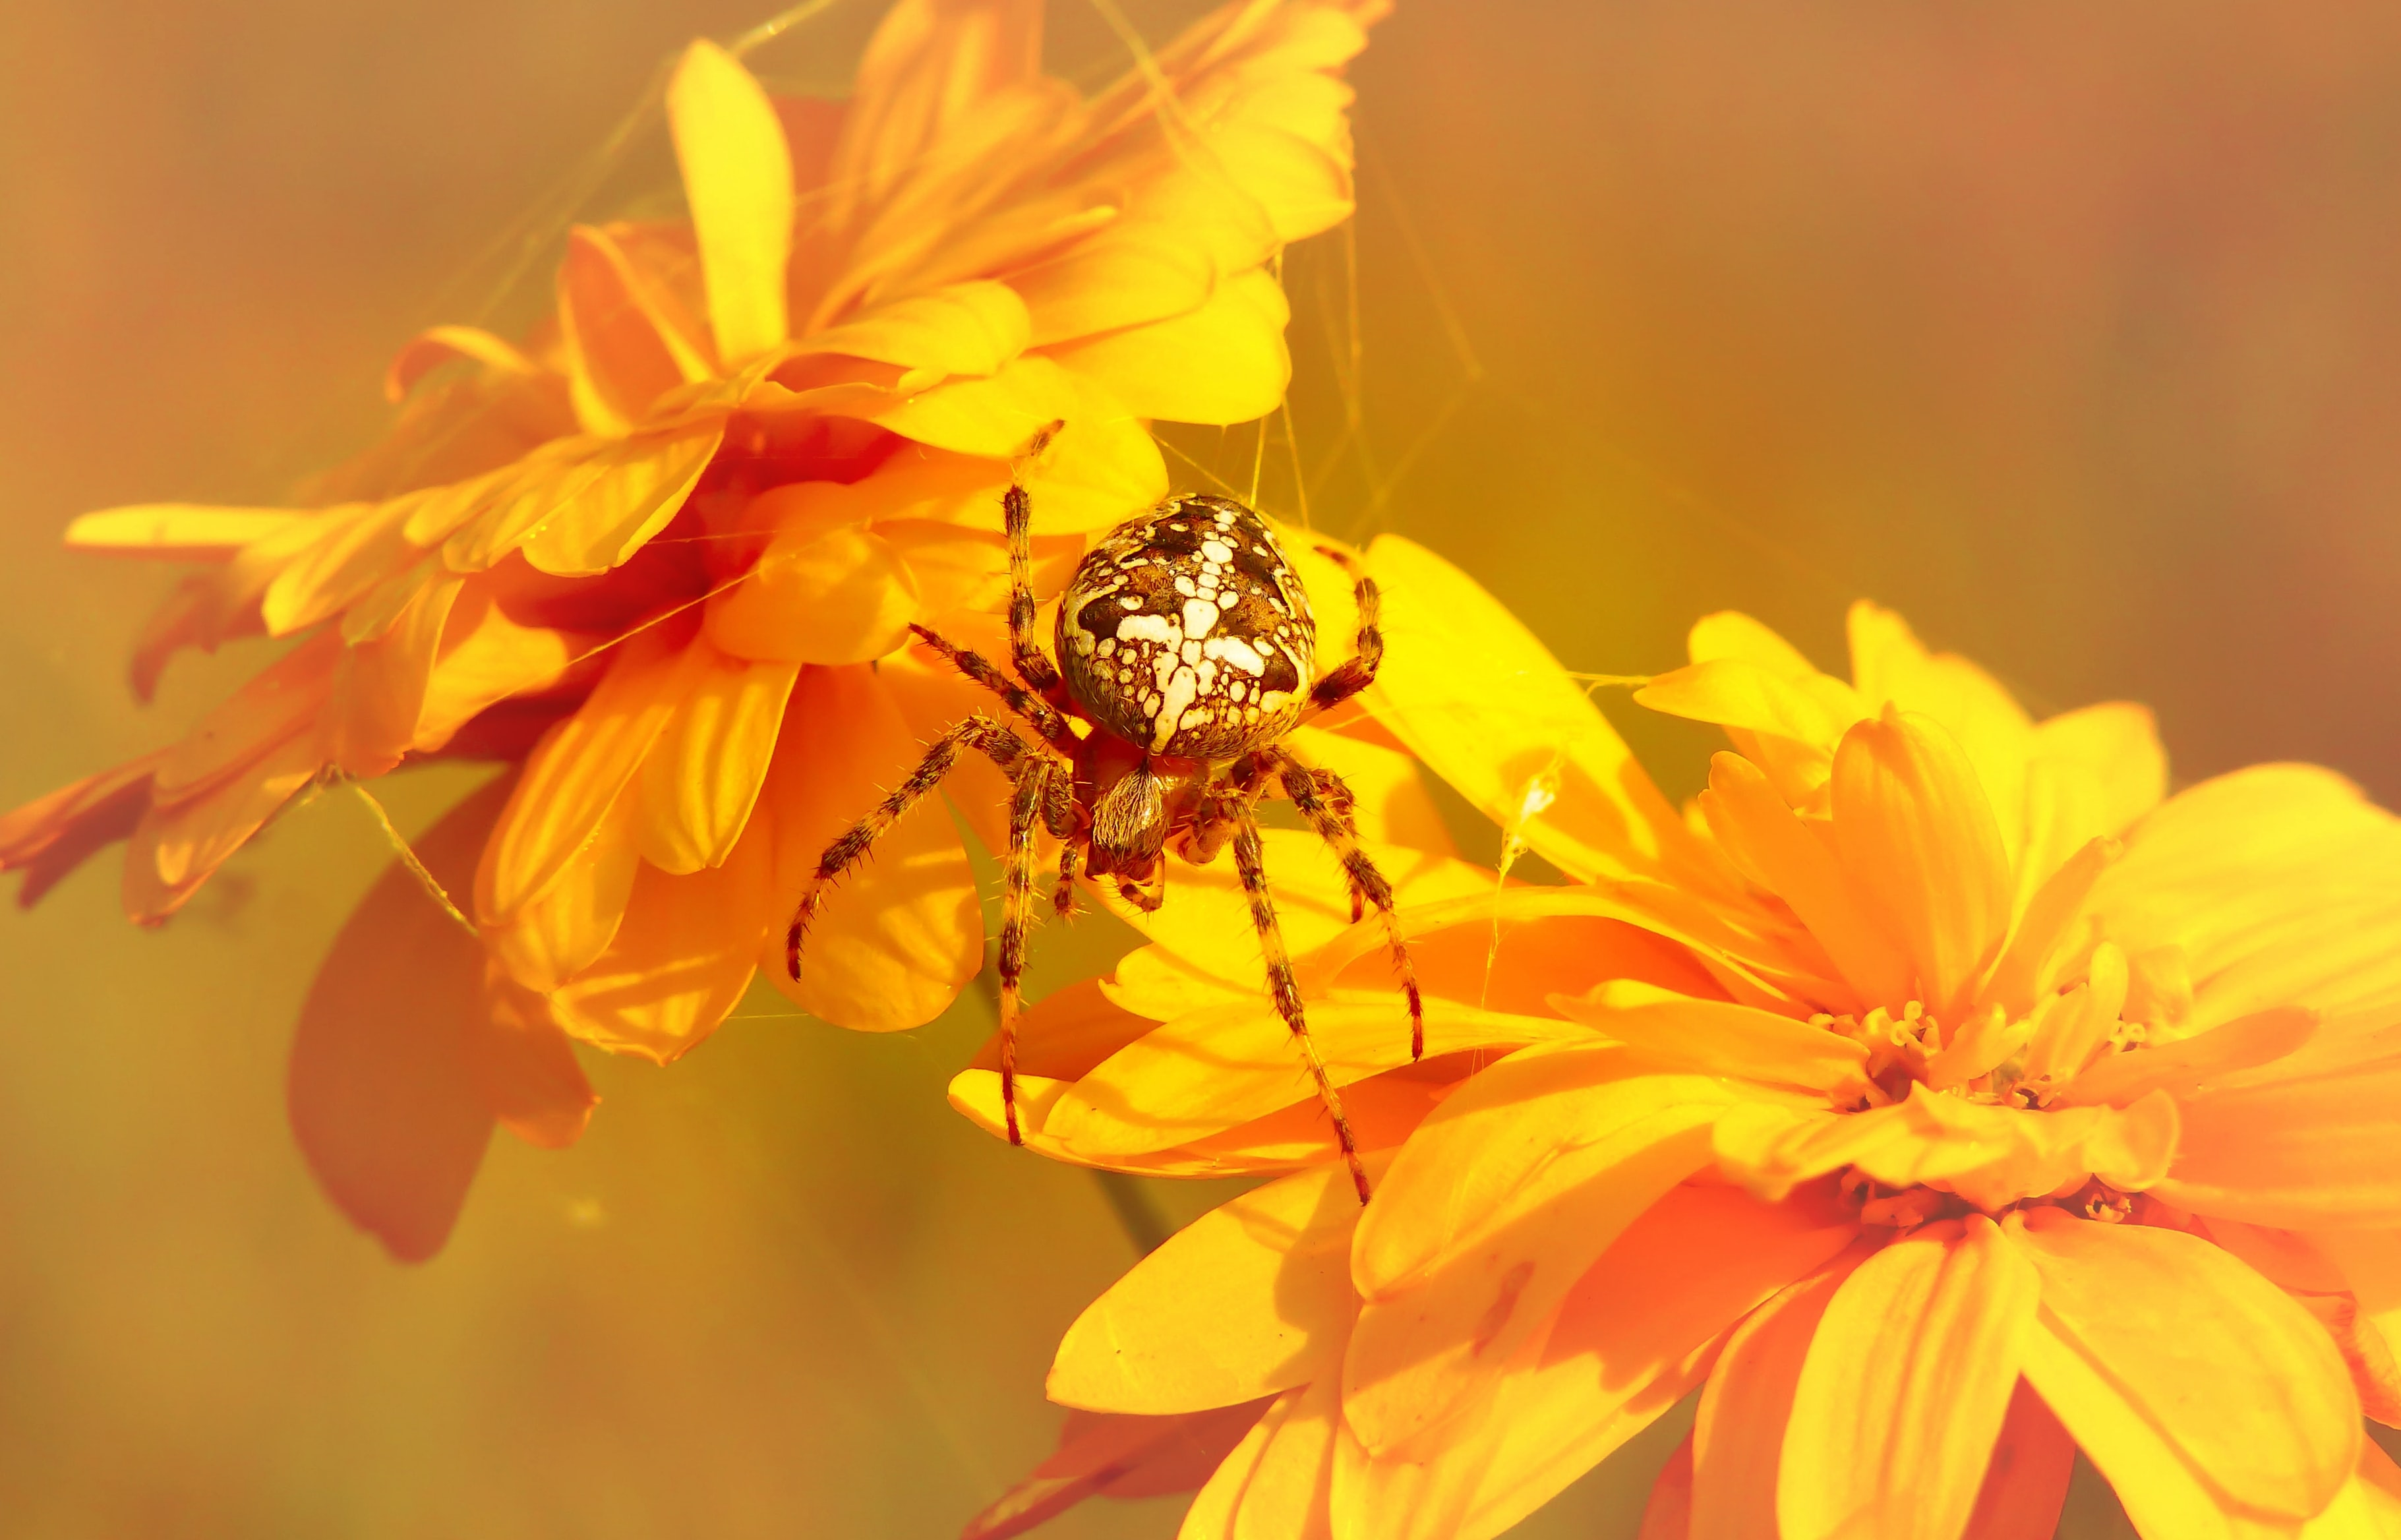 brown and white spider on yellow petaled flower